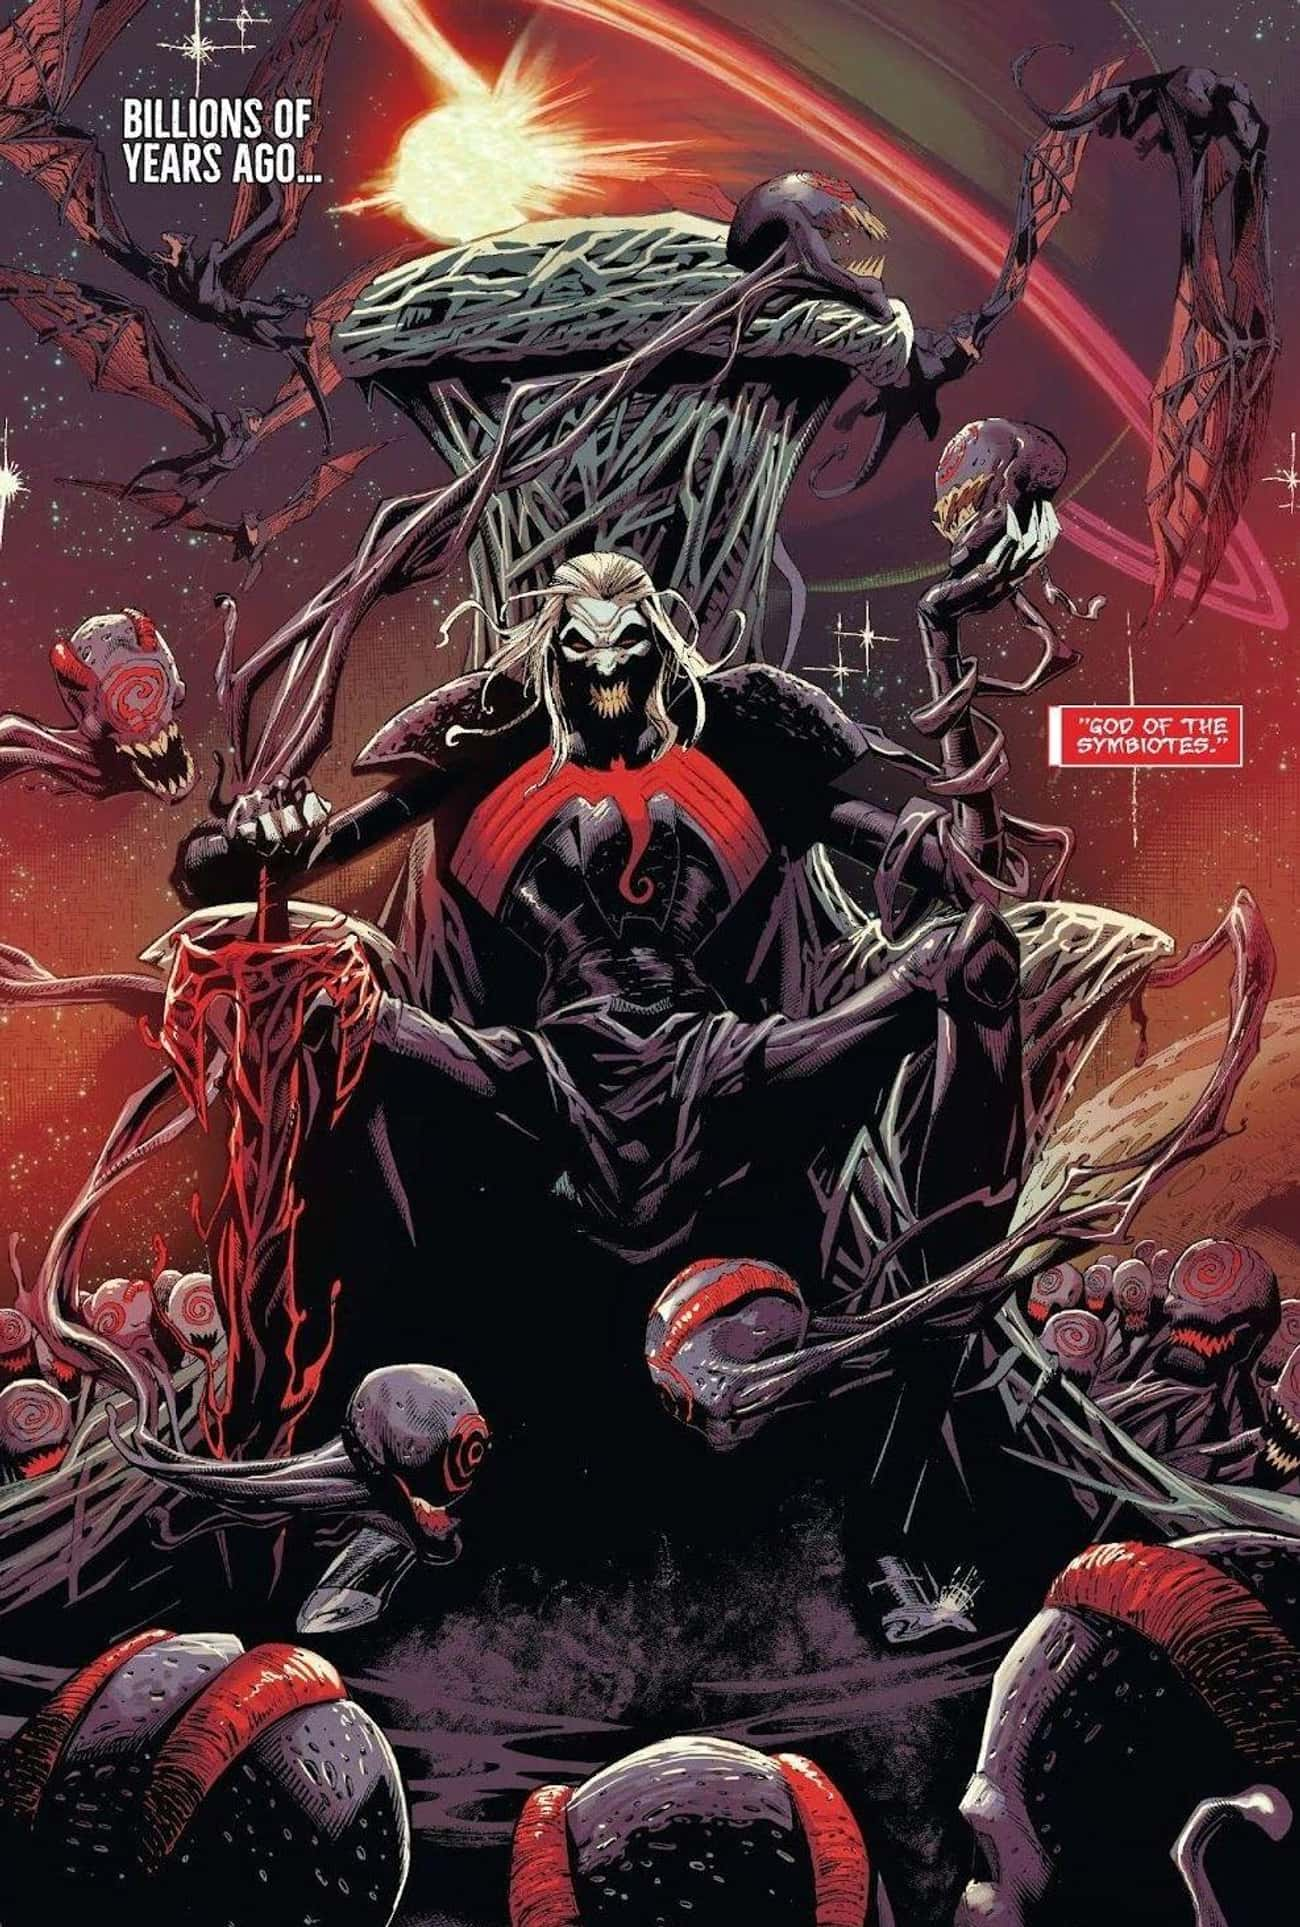 The Real Origin Begins Billion is listed (or ranked) 2 on the list The Real Origin Story Of The Venom Symbiote Is Much More Complicated Than You Think